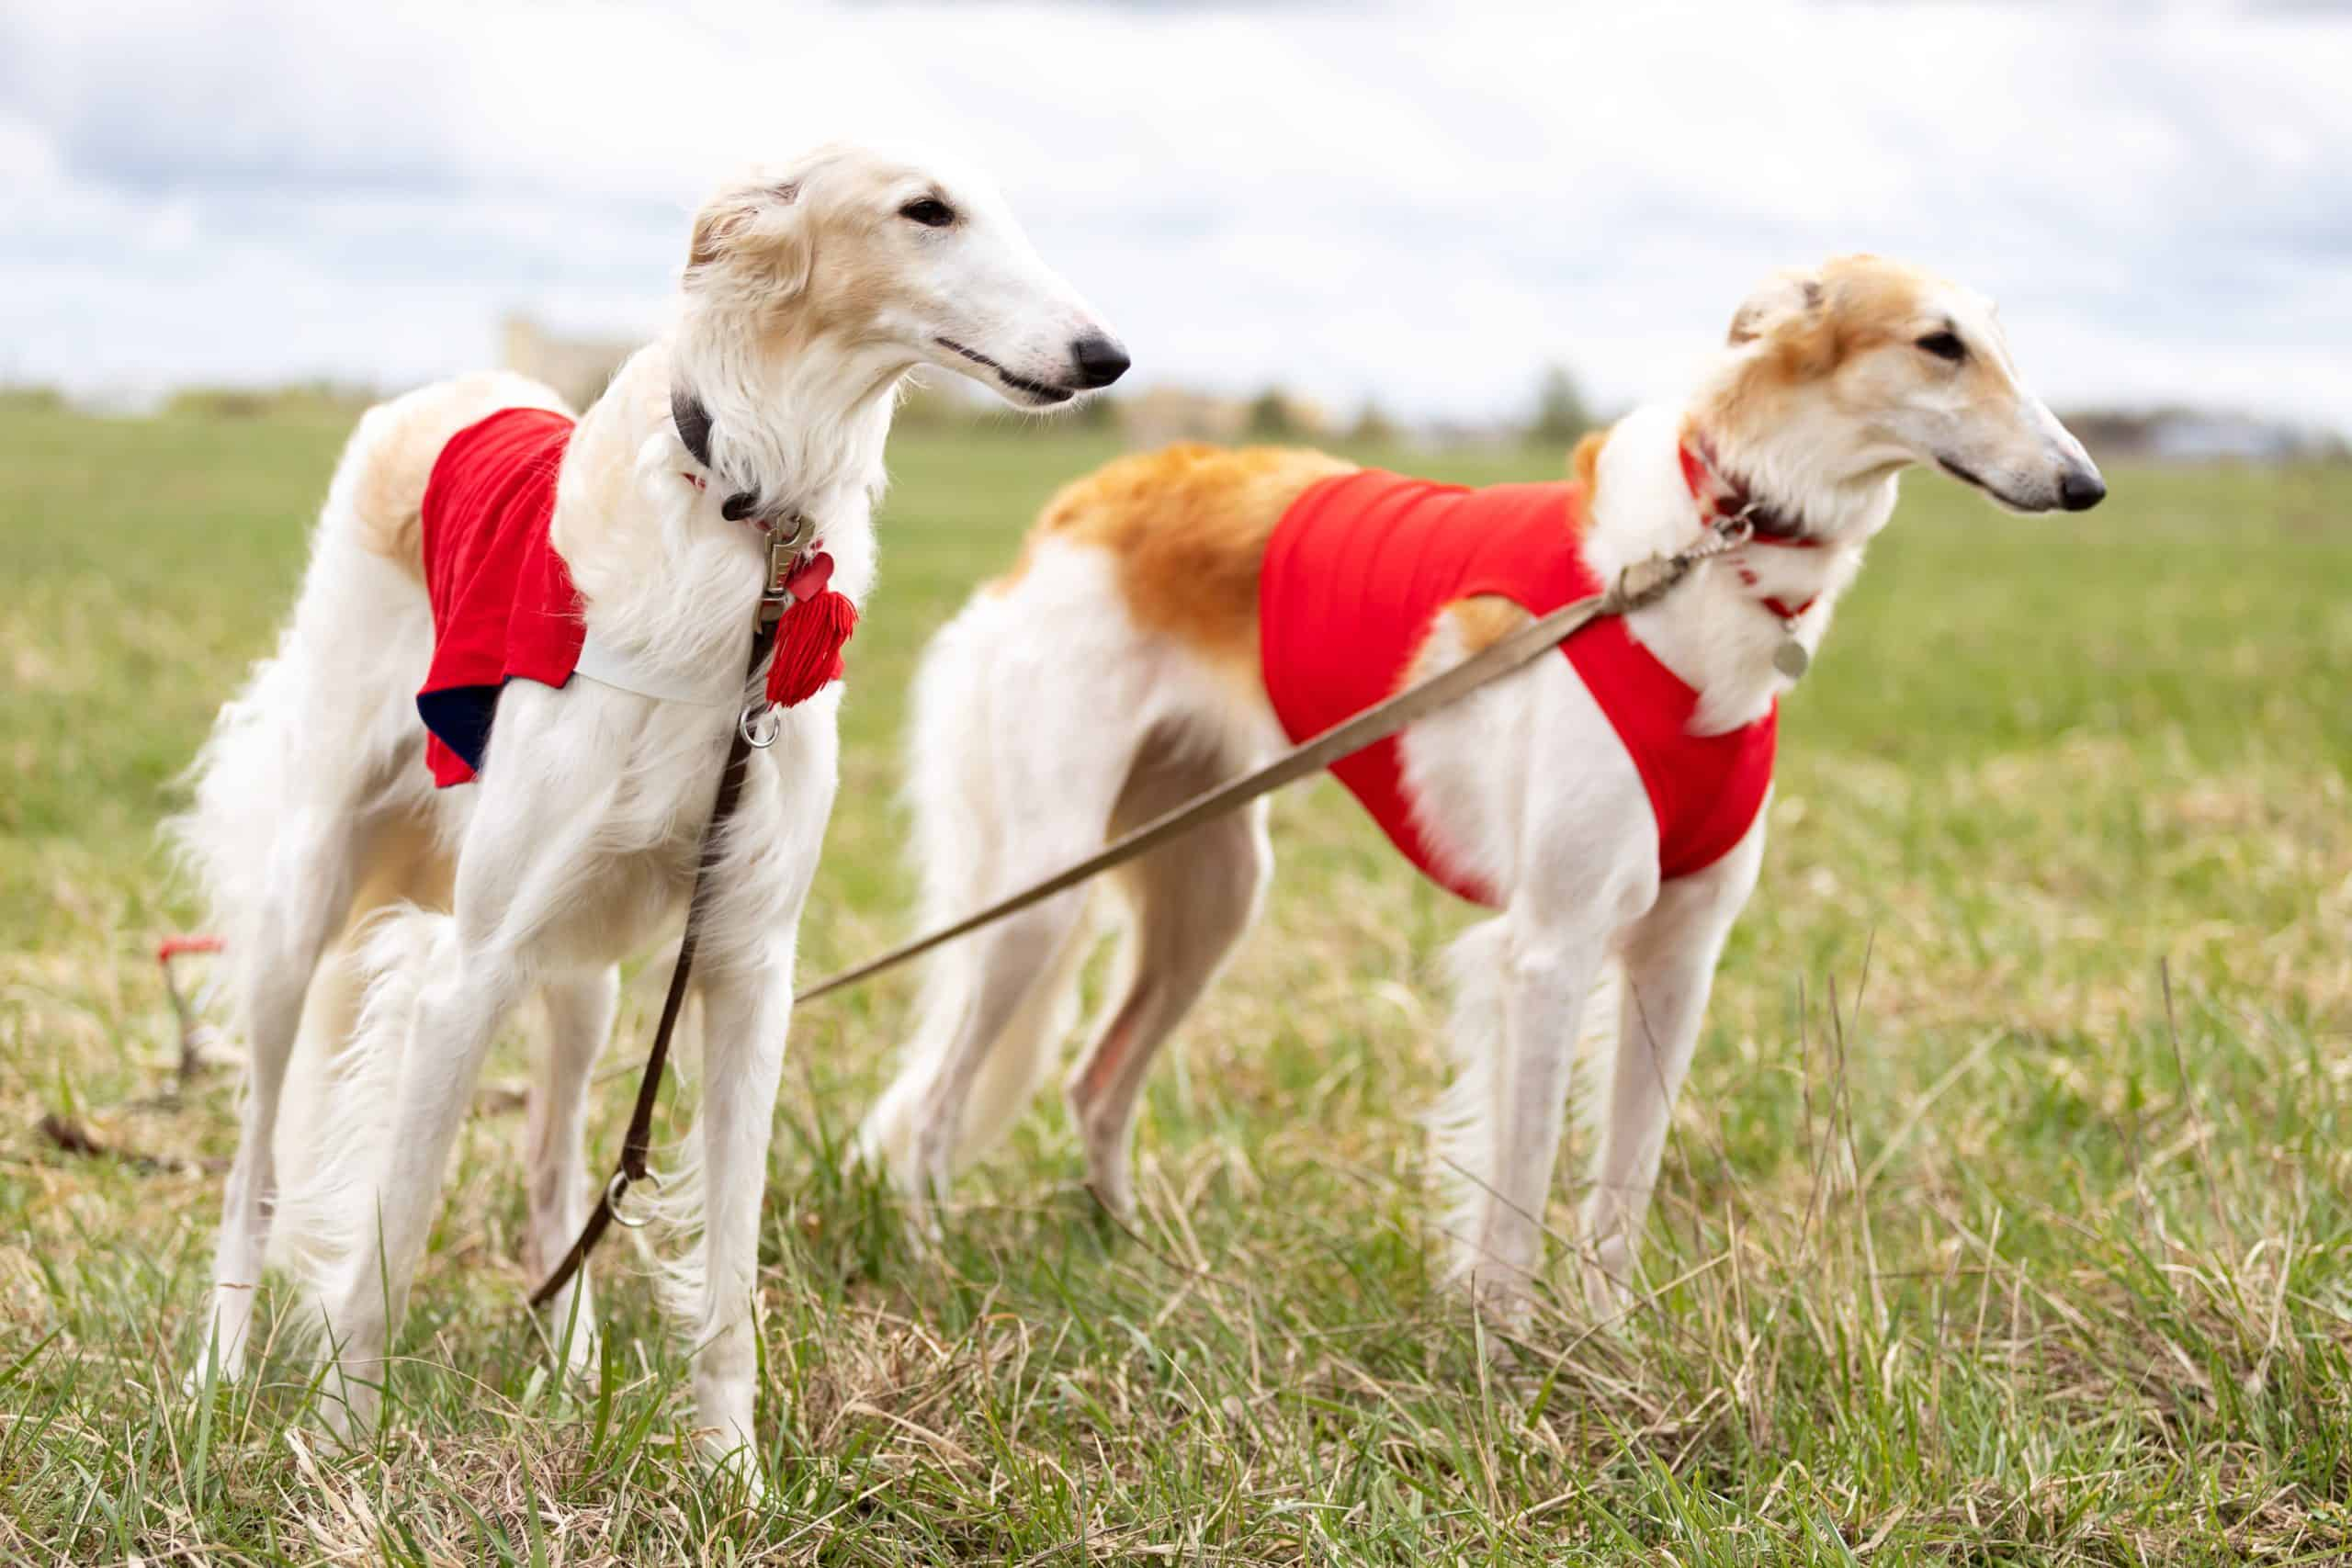 Pair of Borzoi dogs leashed outside. Sighthounds like the Borzoi were bred to hunt by sight and have the ability to creep up swiftly and silently.